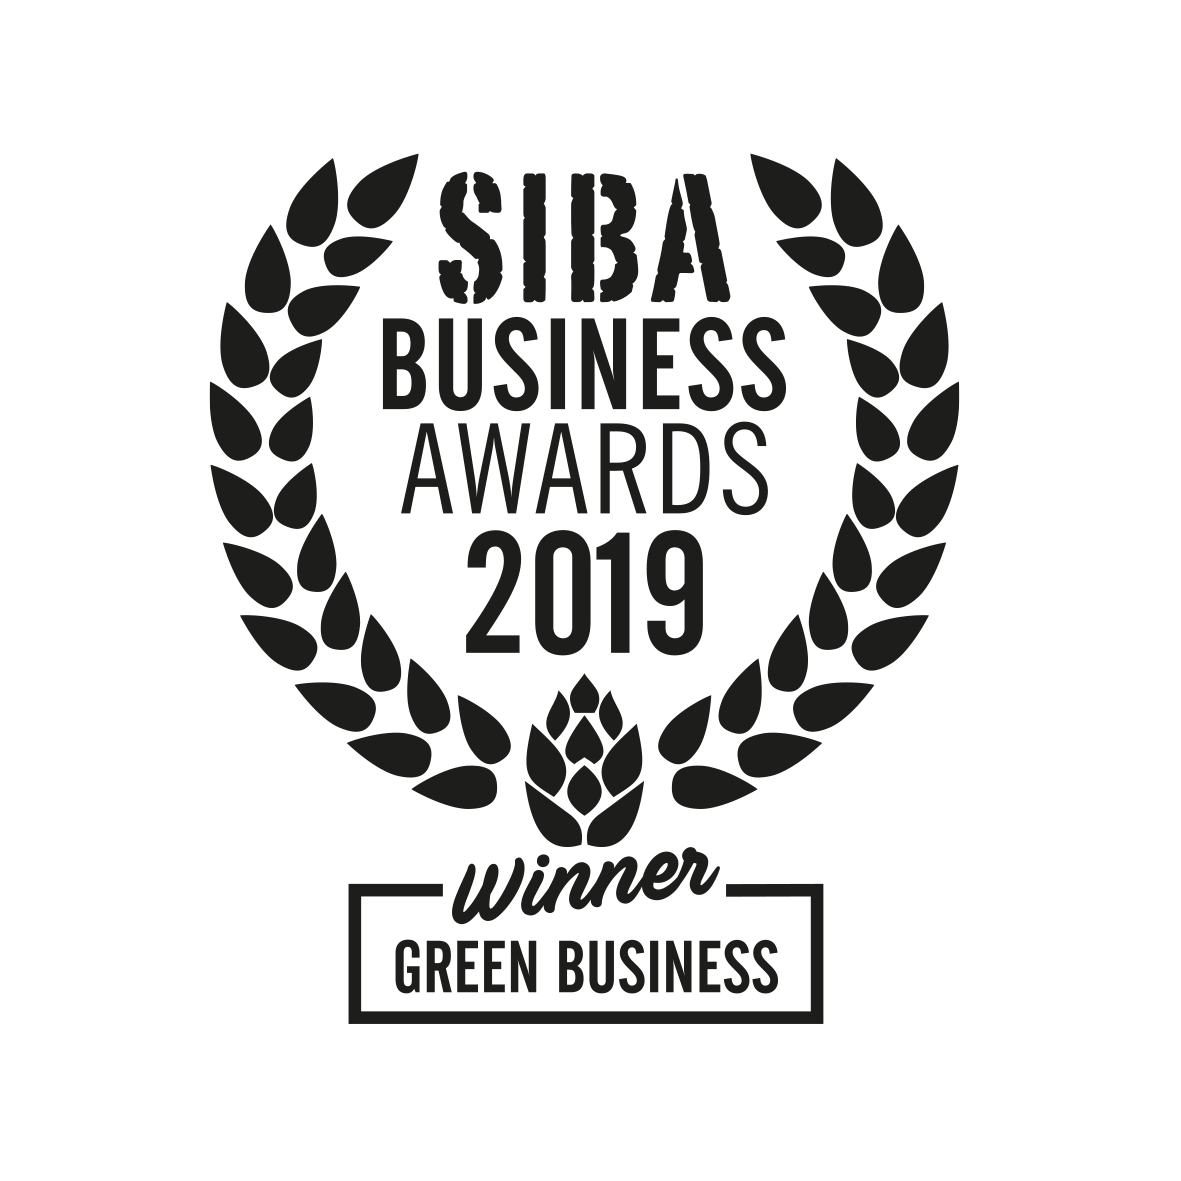 Business Awards winners 2019_Green Business.png